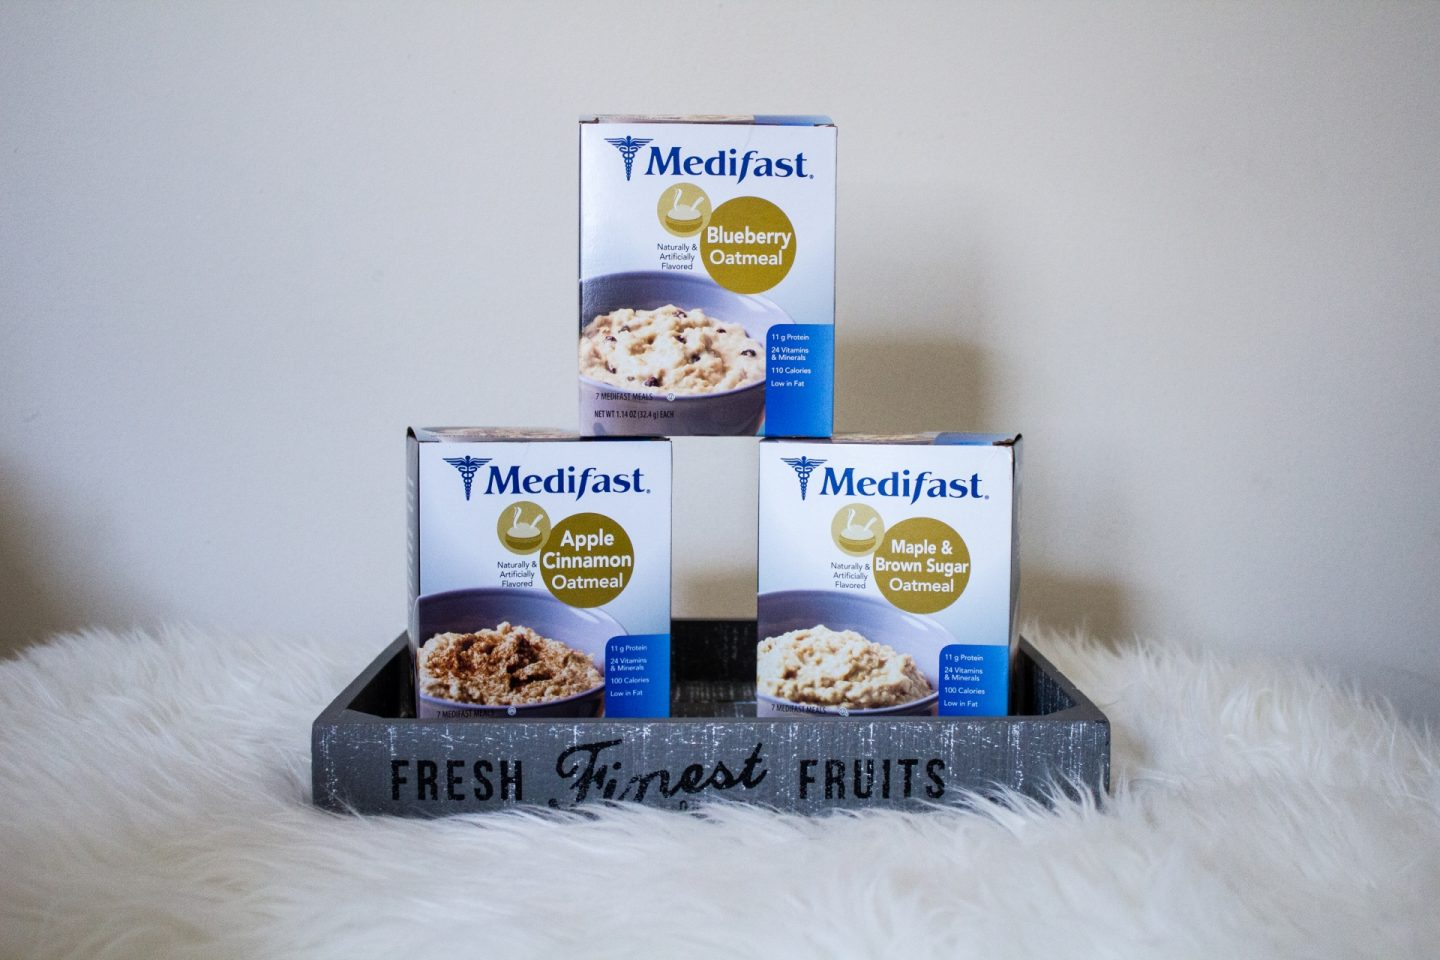 Favorite Medifast Breakfast Oatmeals